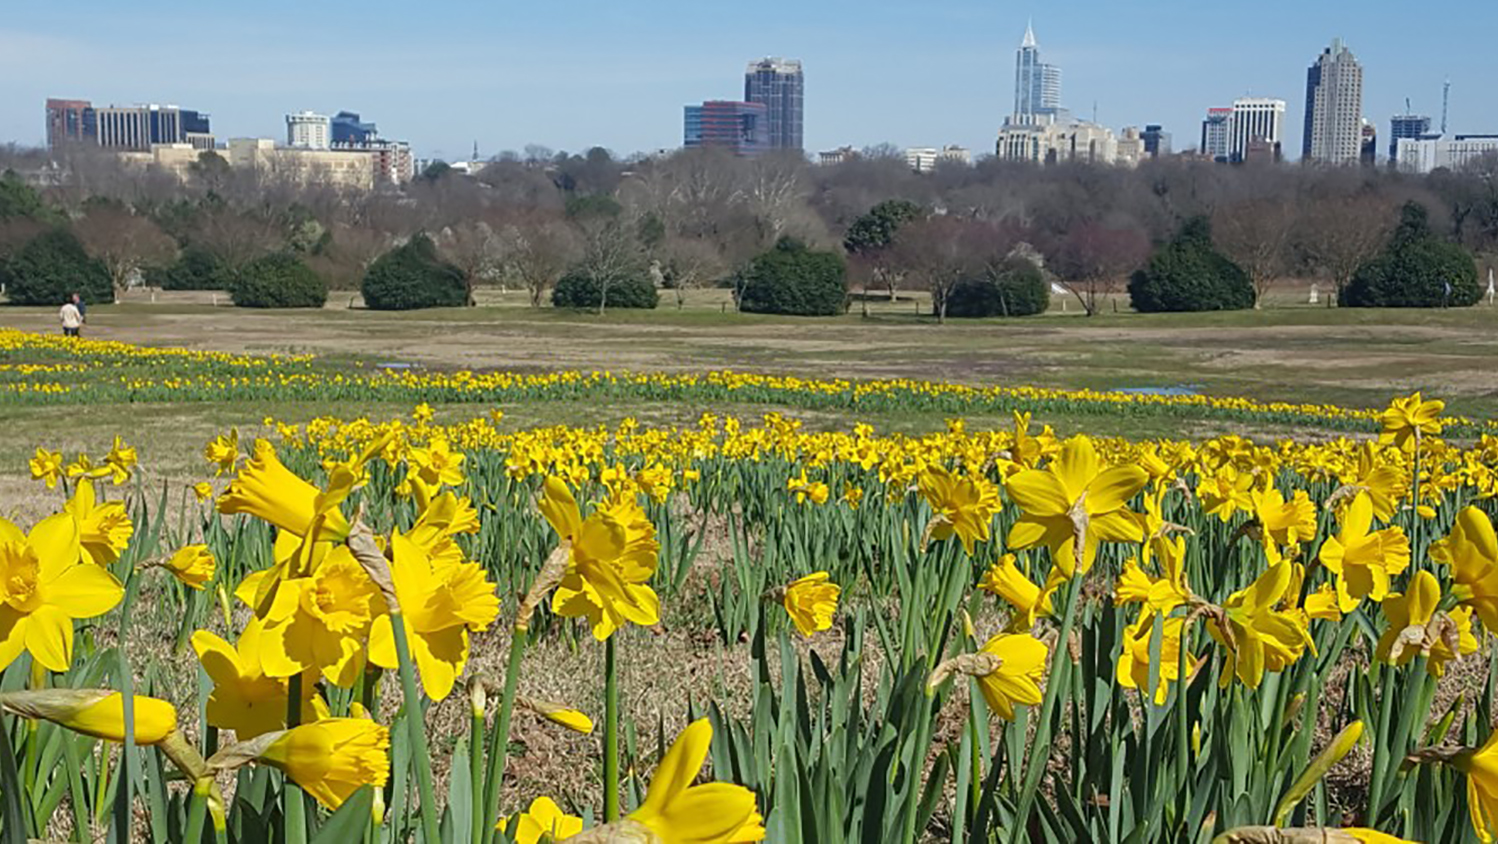 View of the dafoddils field in Dorothea Dix Park with the city of Raleigh in the backgroud